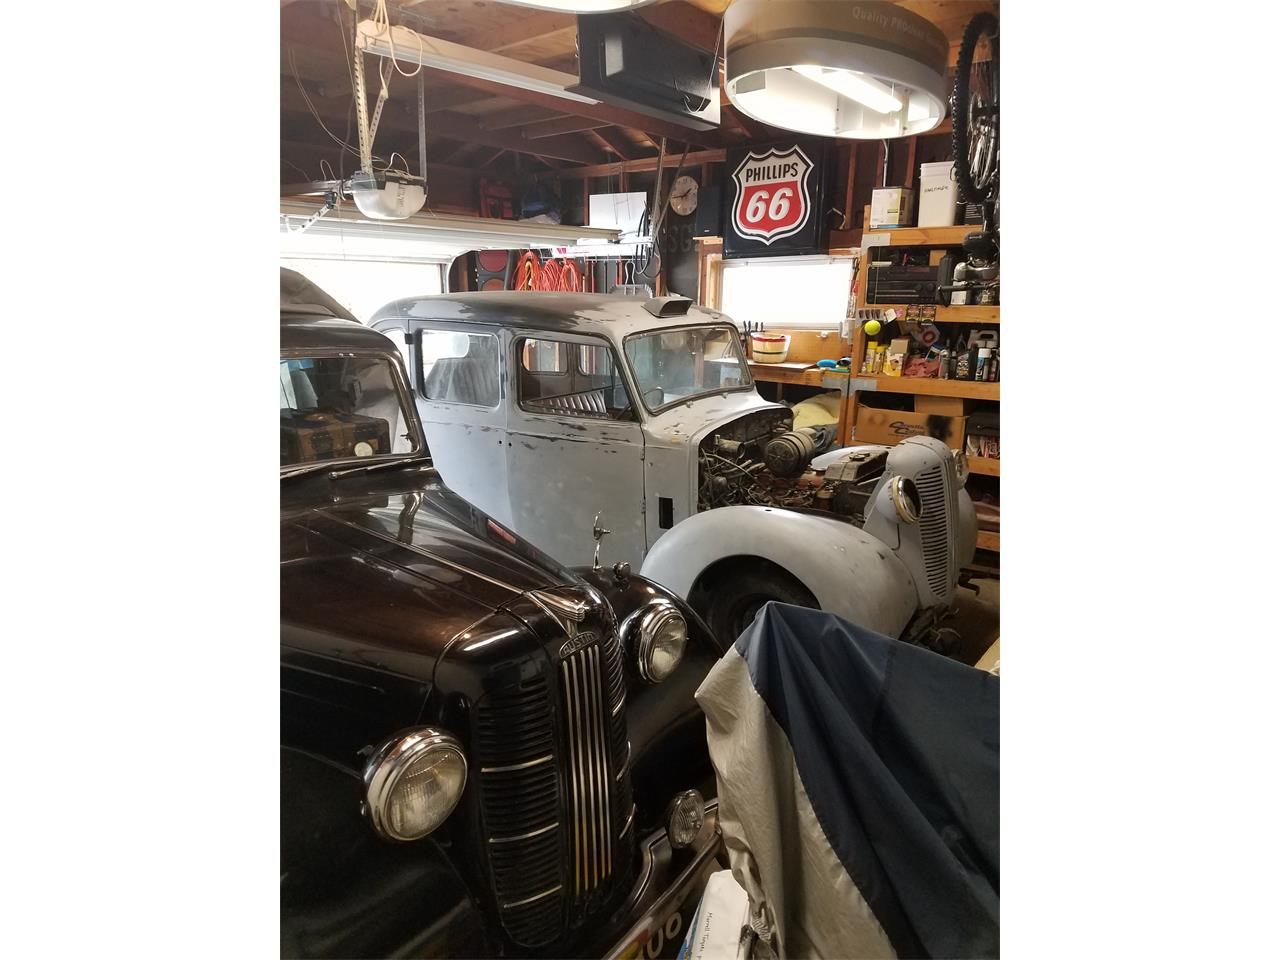 1958 Austin FX3 Taxi Cab (CC-1254581) for sale in Waukesha, Wisconsin